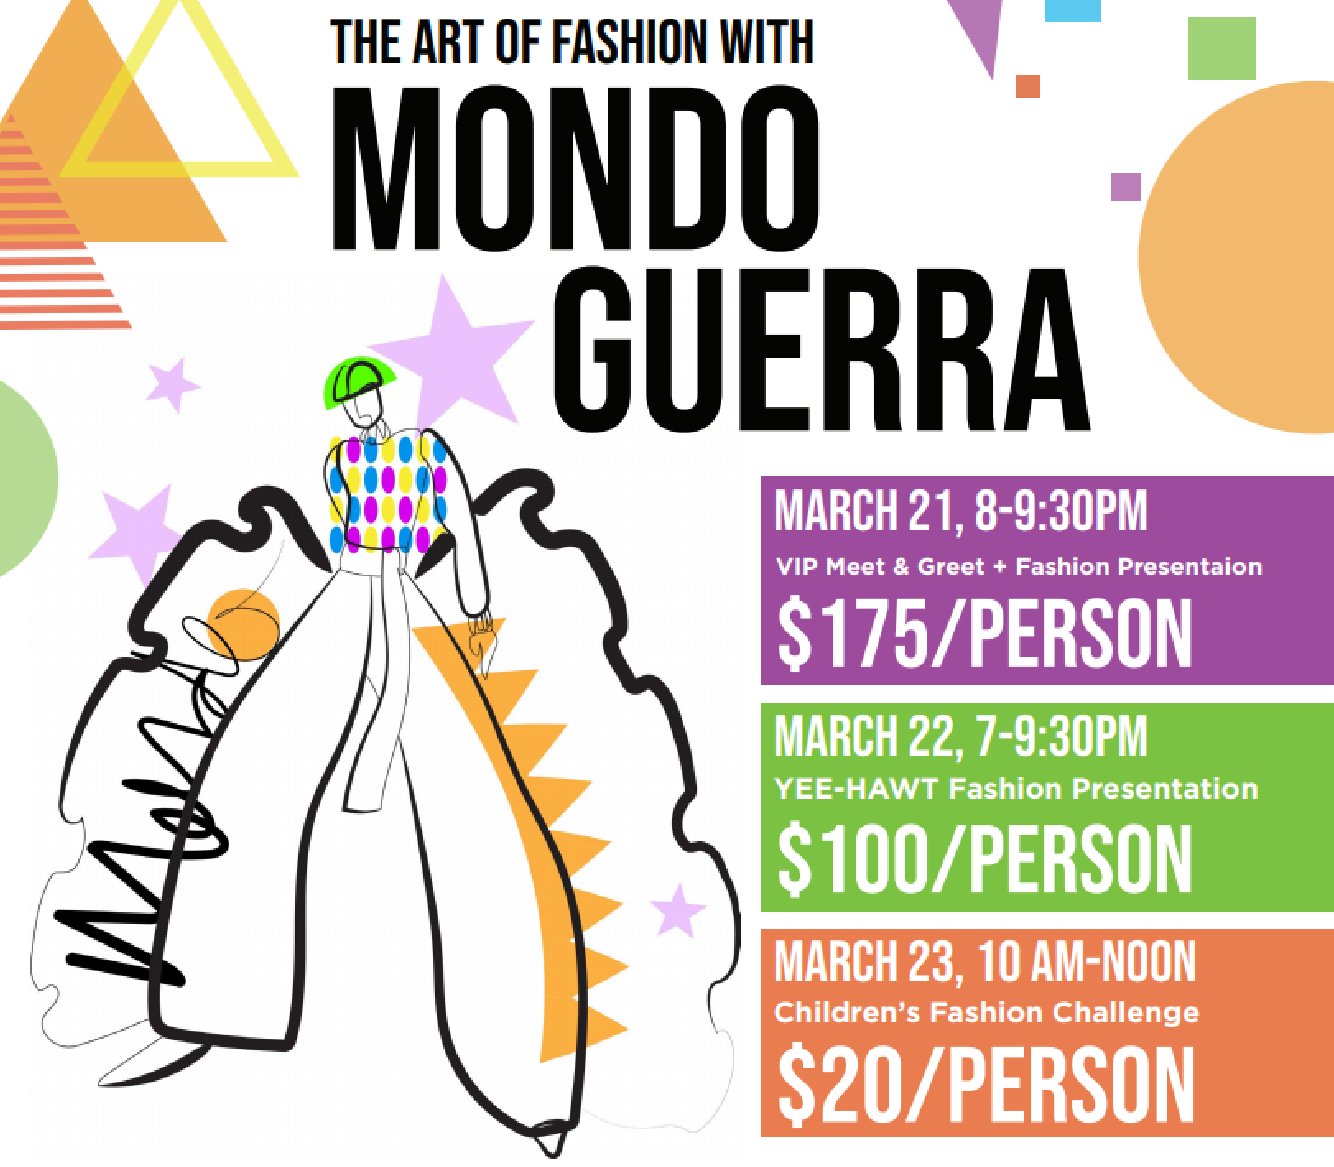 The Art of Fashion with Mondo Guerra: YEE-HAWT